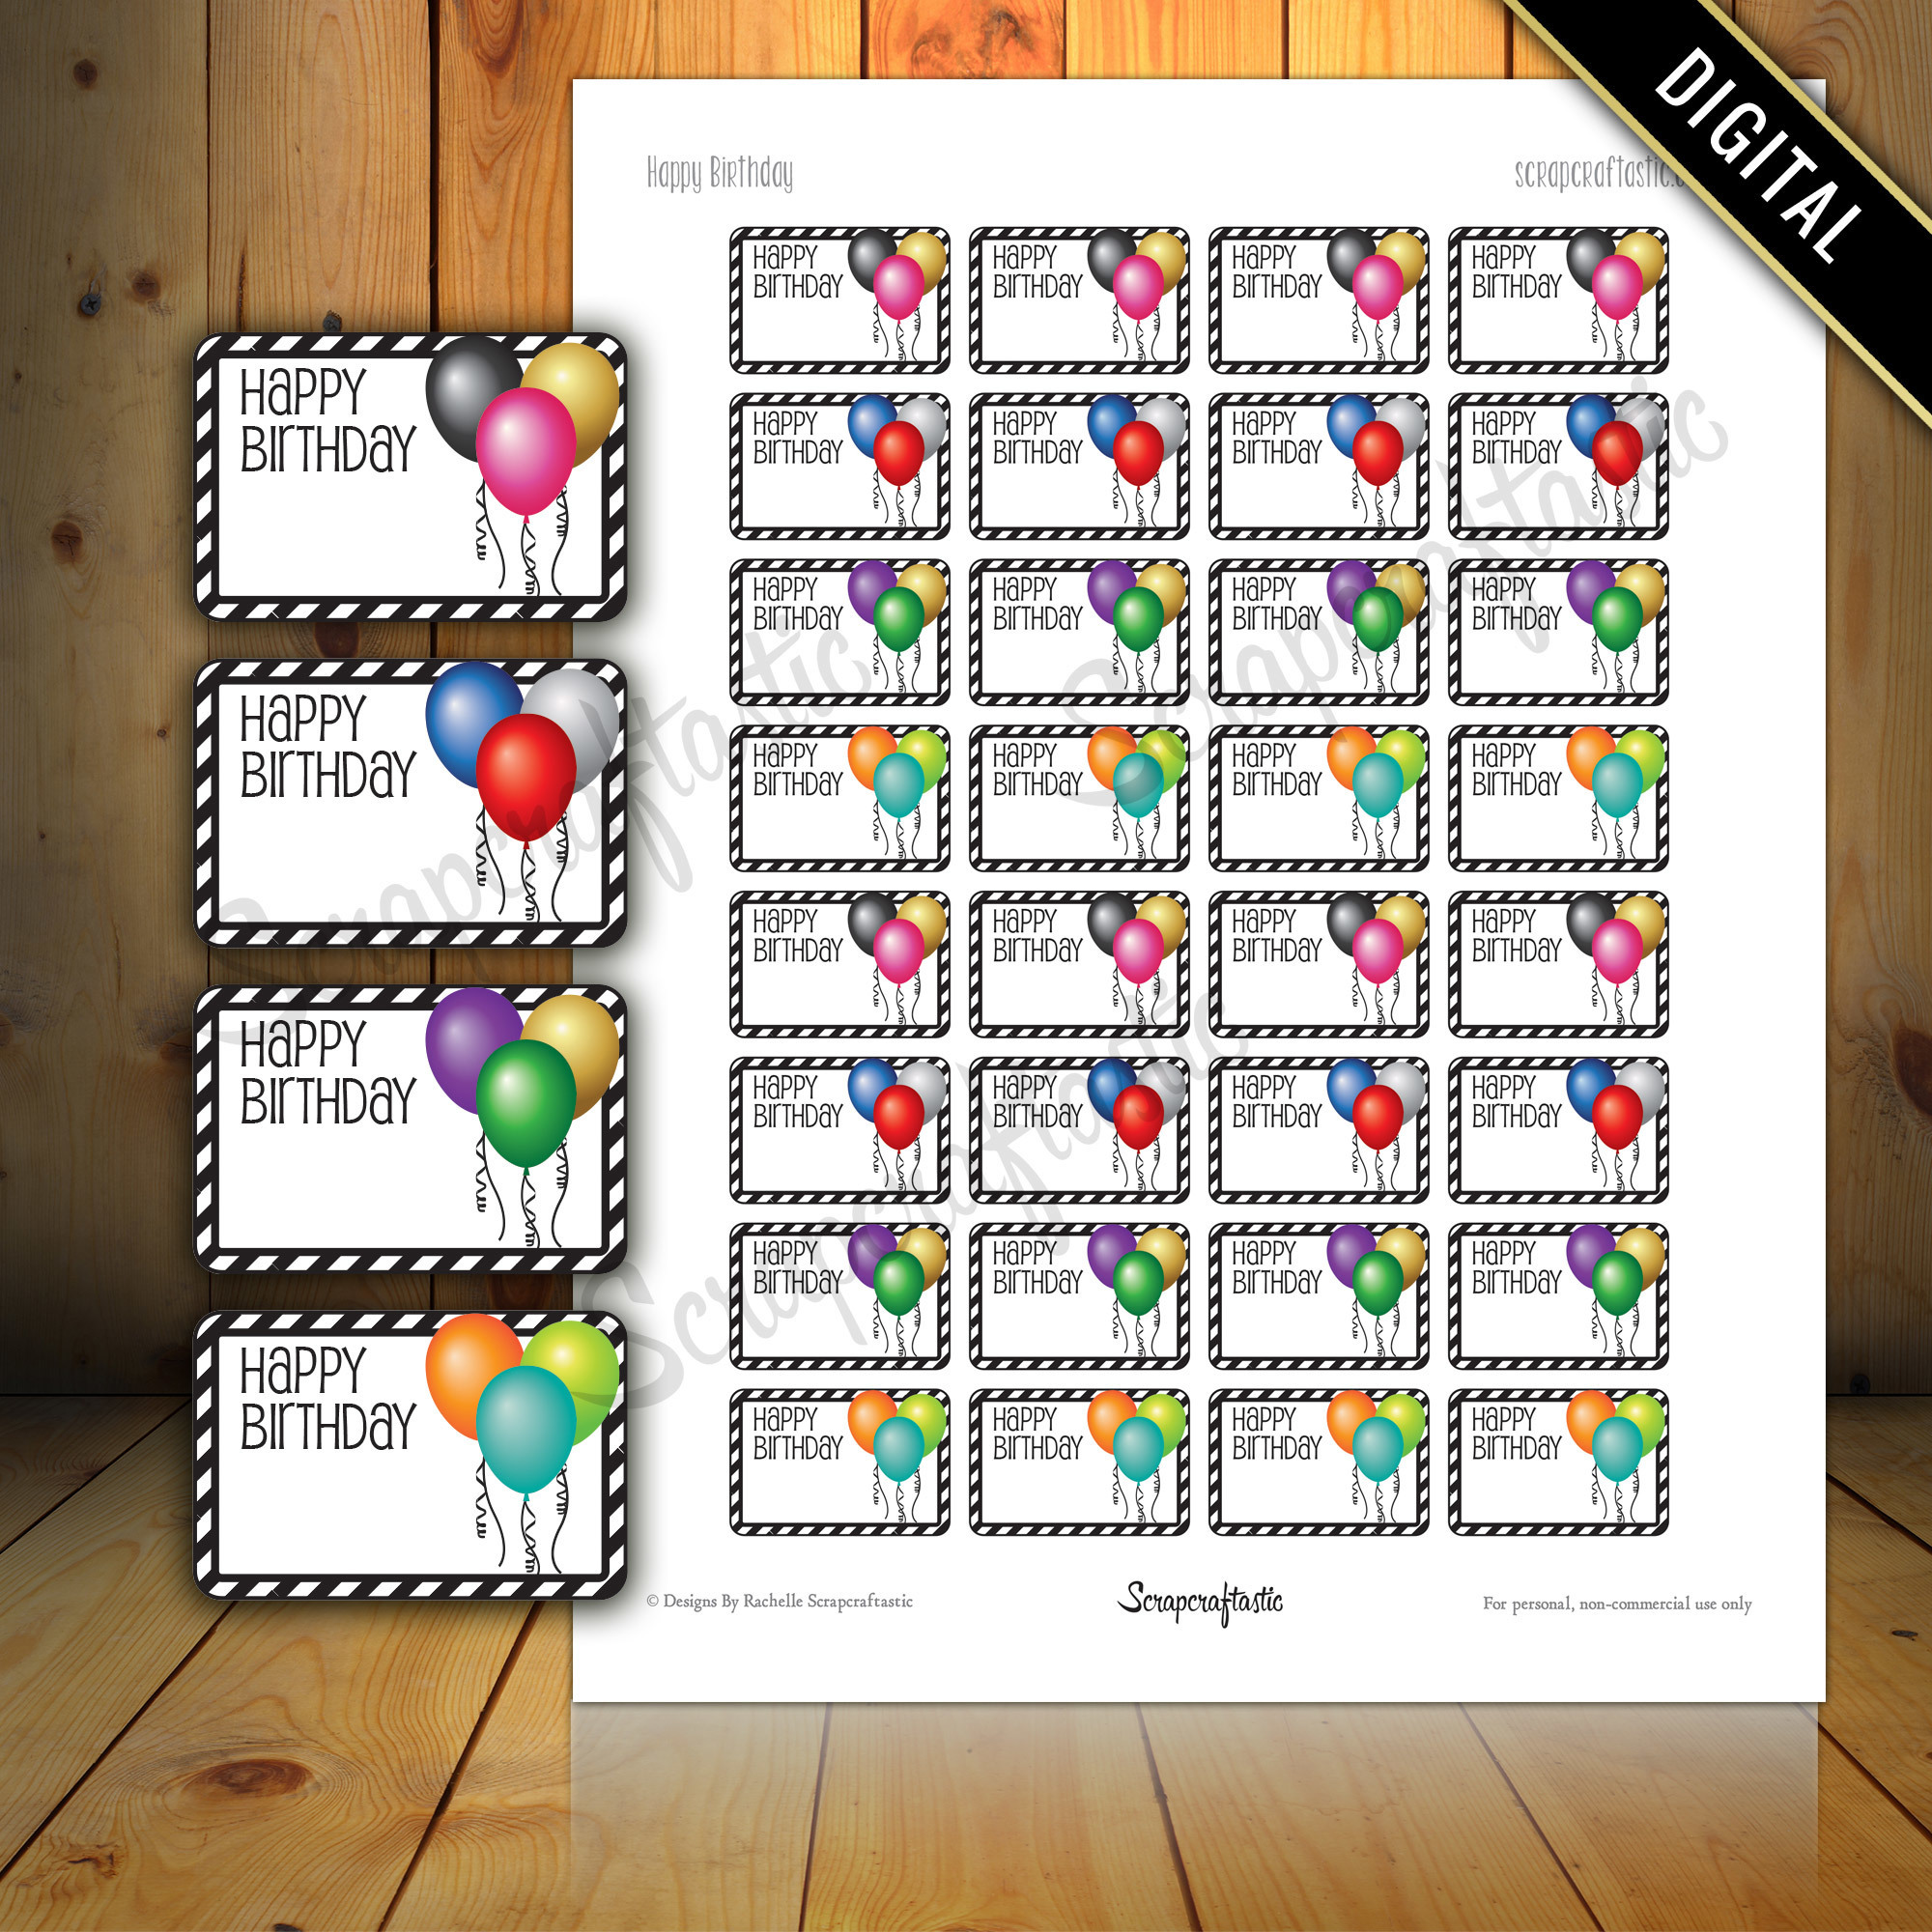 Happy Birthday Balloon Half Box Printable Planner Stickers for Paper Planners, Agendas and Organizers | Mambi  Happy Planne, Erin Condren 00010